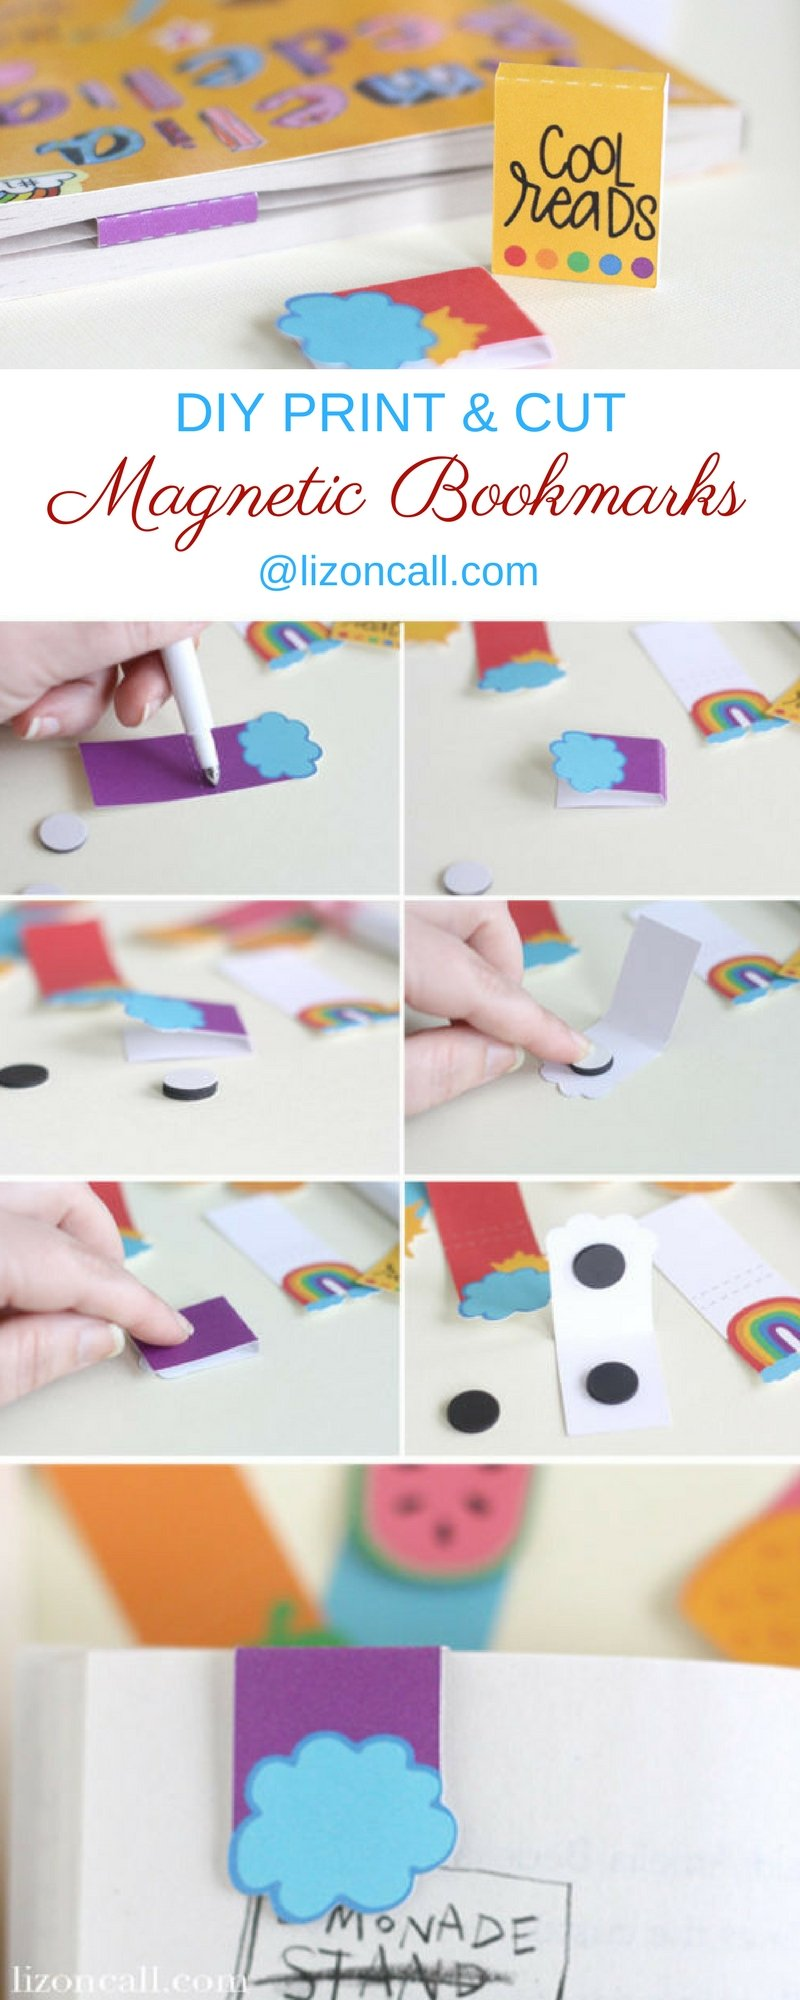 Have any book lovers in your home? Get them excited about reading all the books with these print and cut DIY magnetic bookmarks.